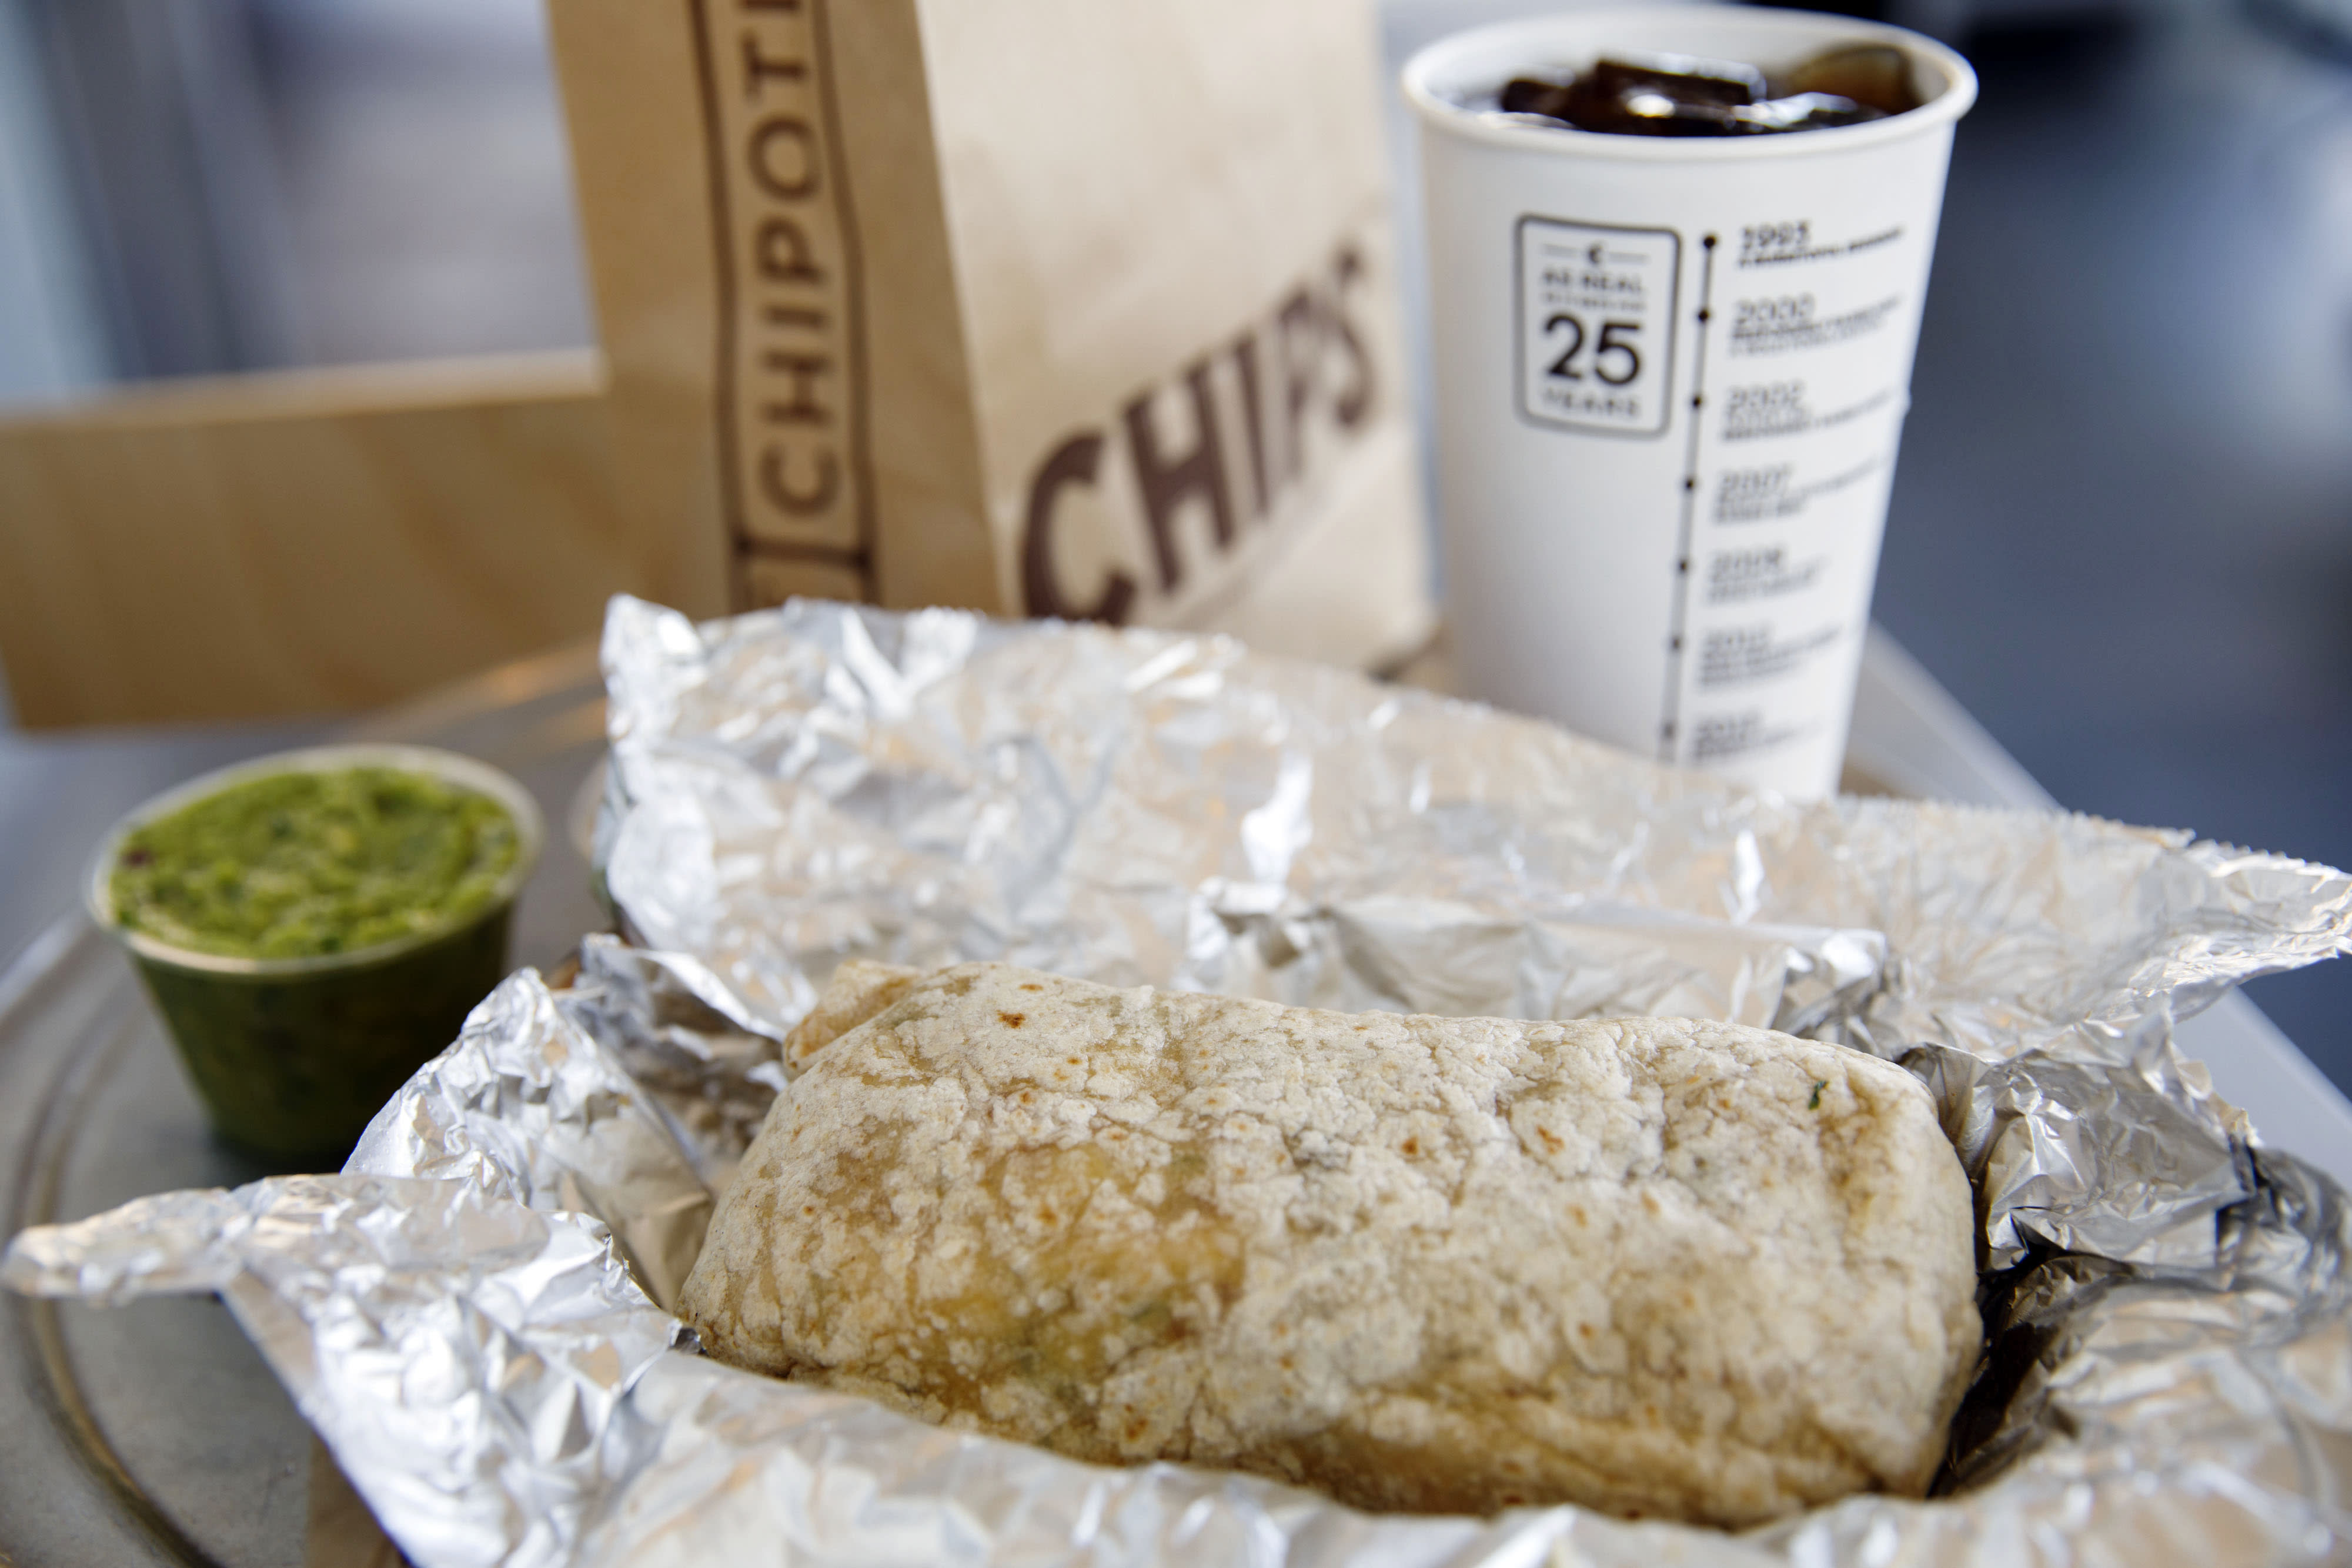 Cowen upgrades Chipotle and names it a 'best idea' for 2020 because of digital sales